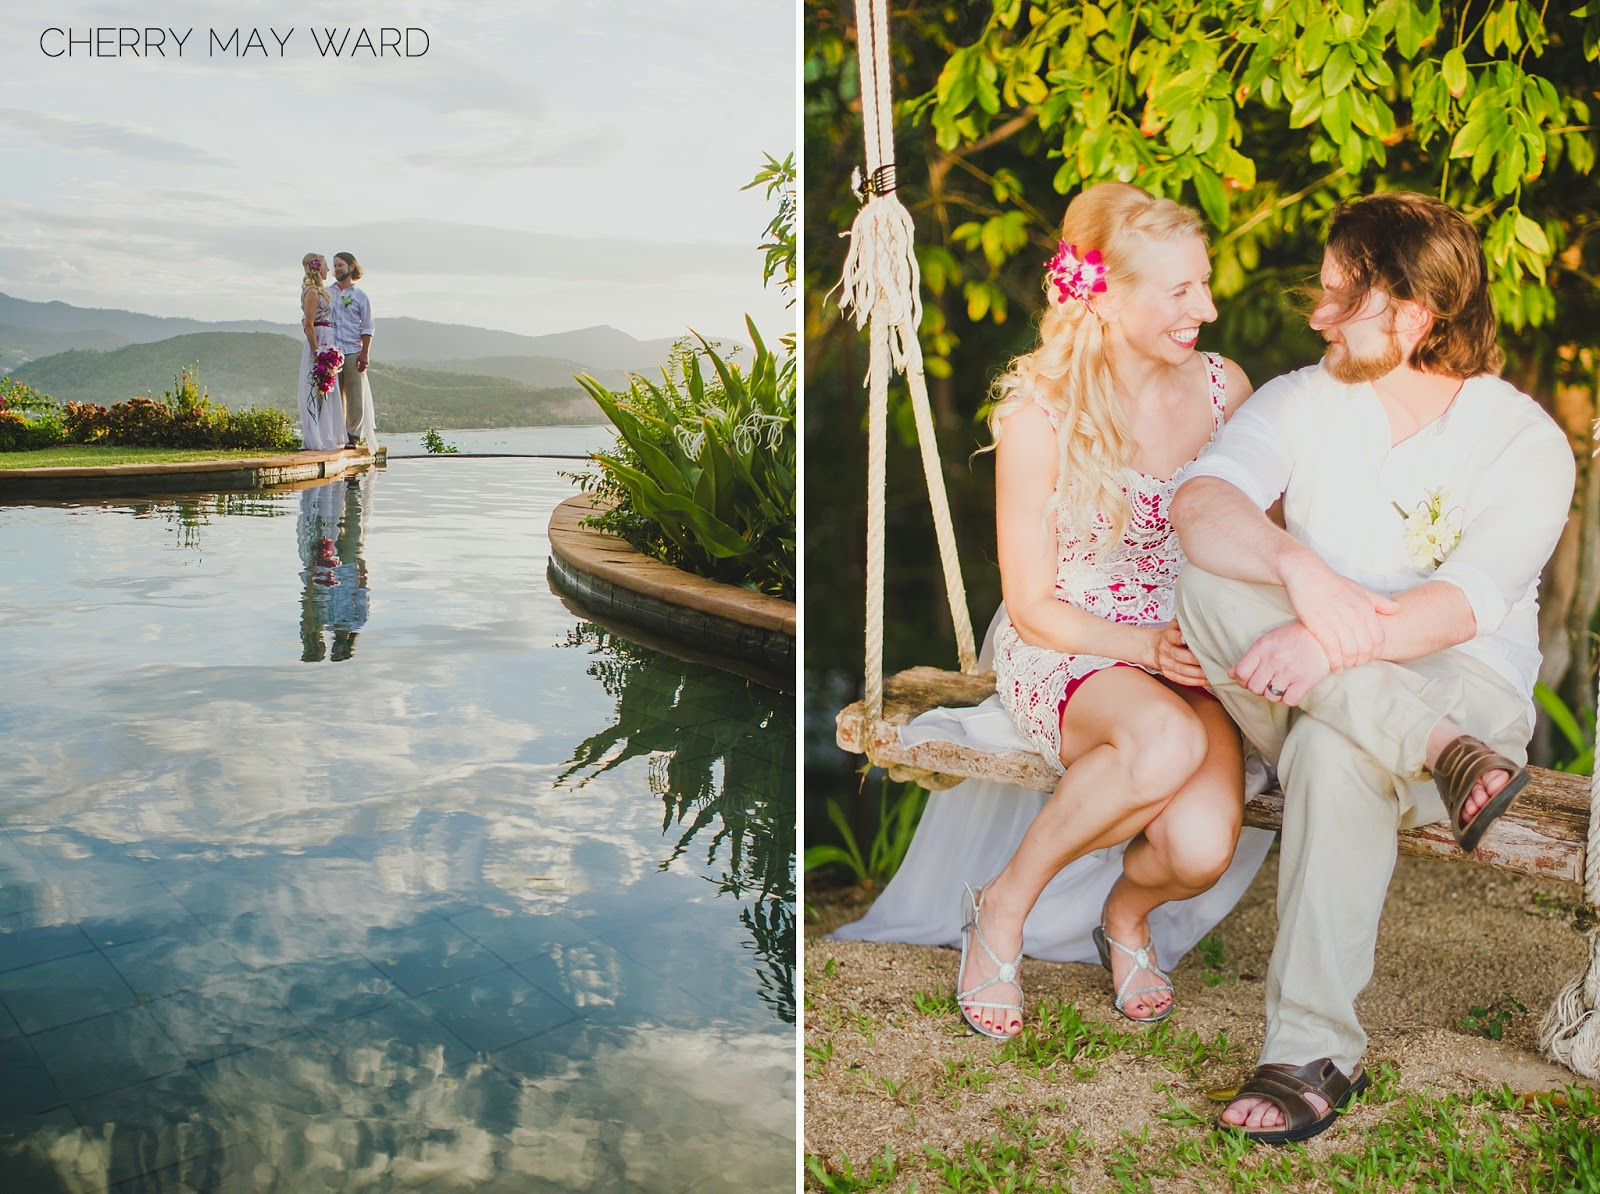 view over the pool, bride and groom across from an infinity pool, bride and groom with a view, grid and groom sitting on a swing, Private villa wedding with a view